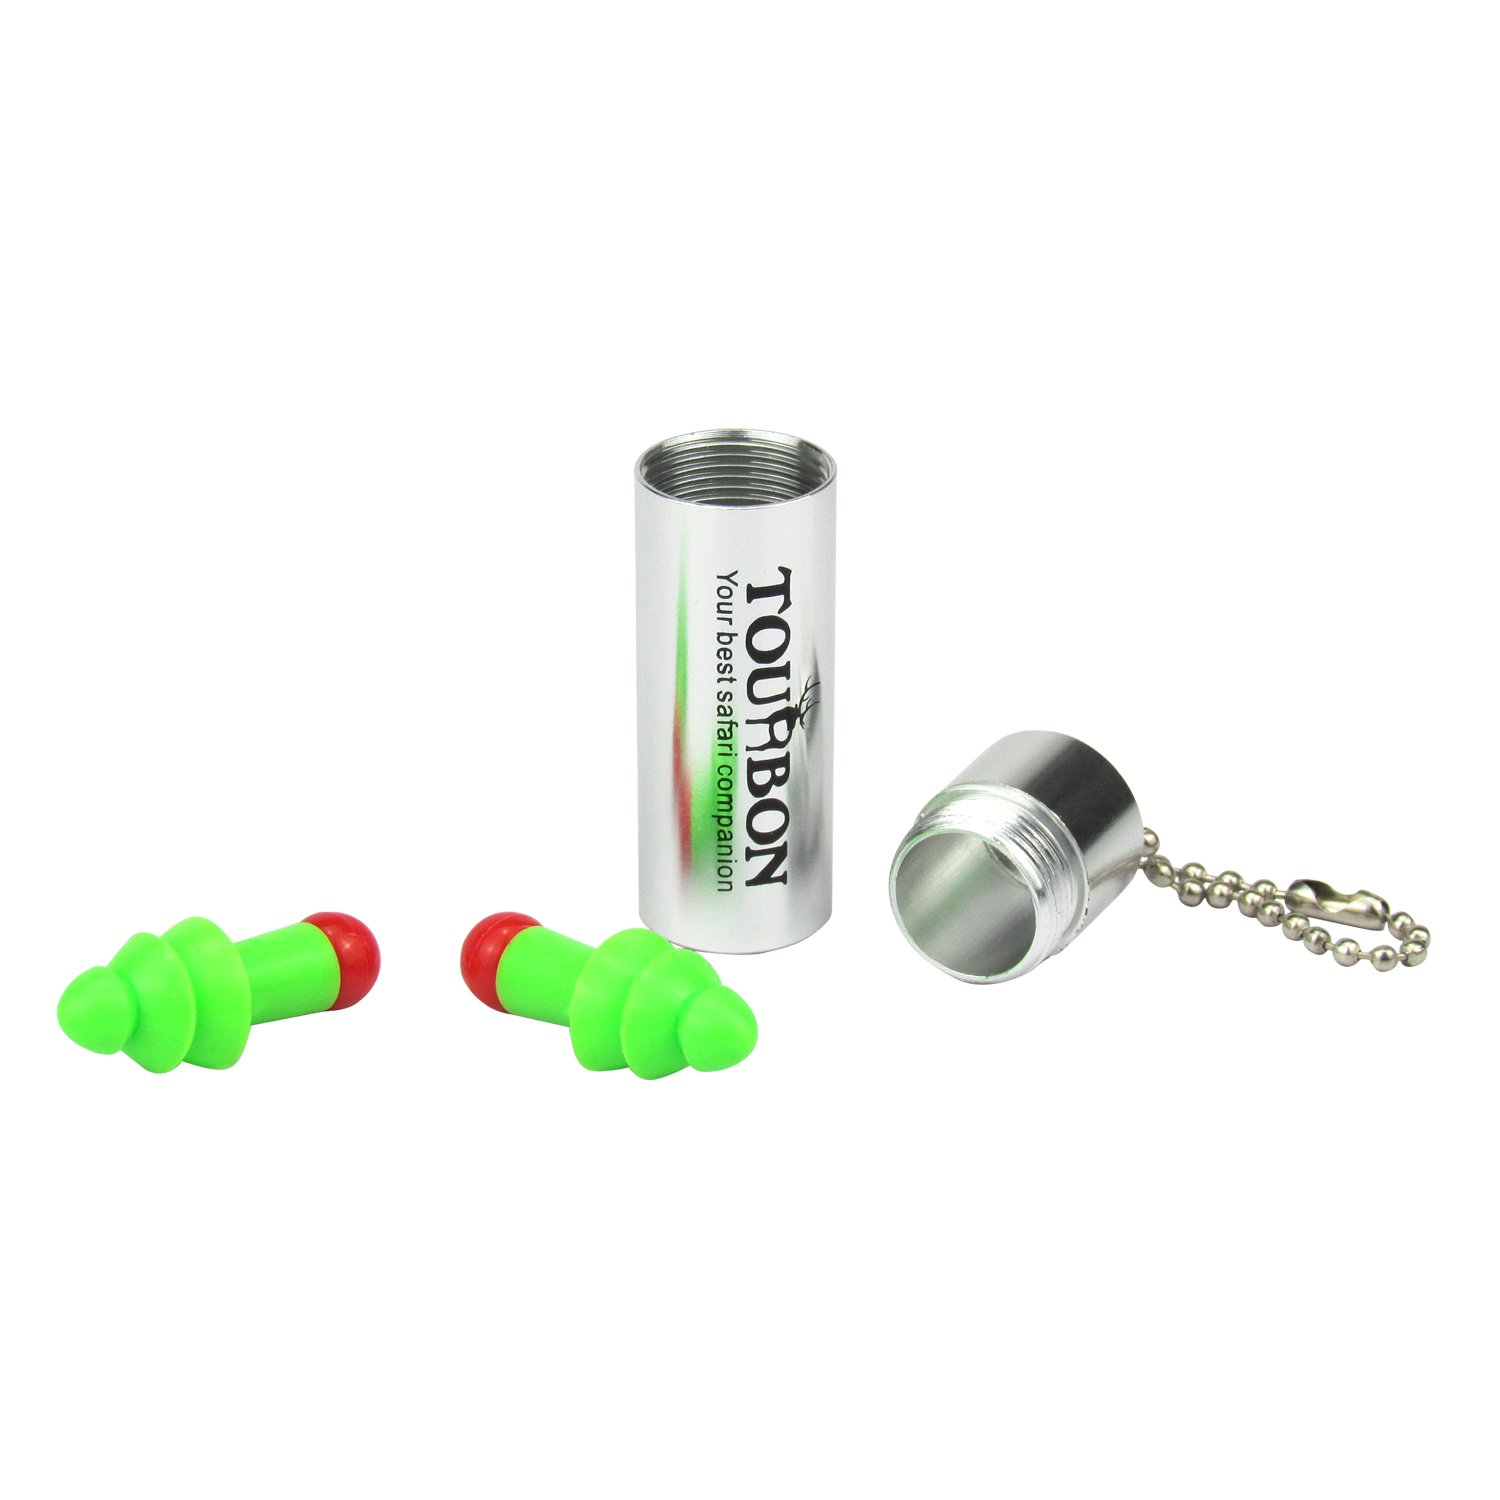 Tourbon Silicone Ear Plugs Hearing Protectors Noise Reducer Musicians With Carry Case Two Packs